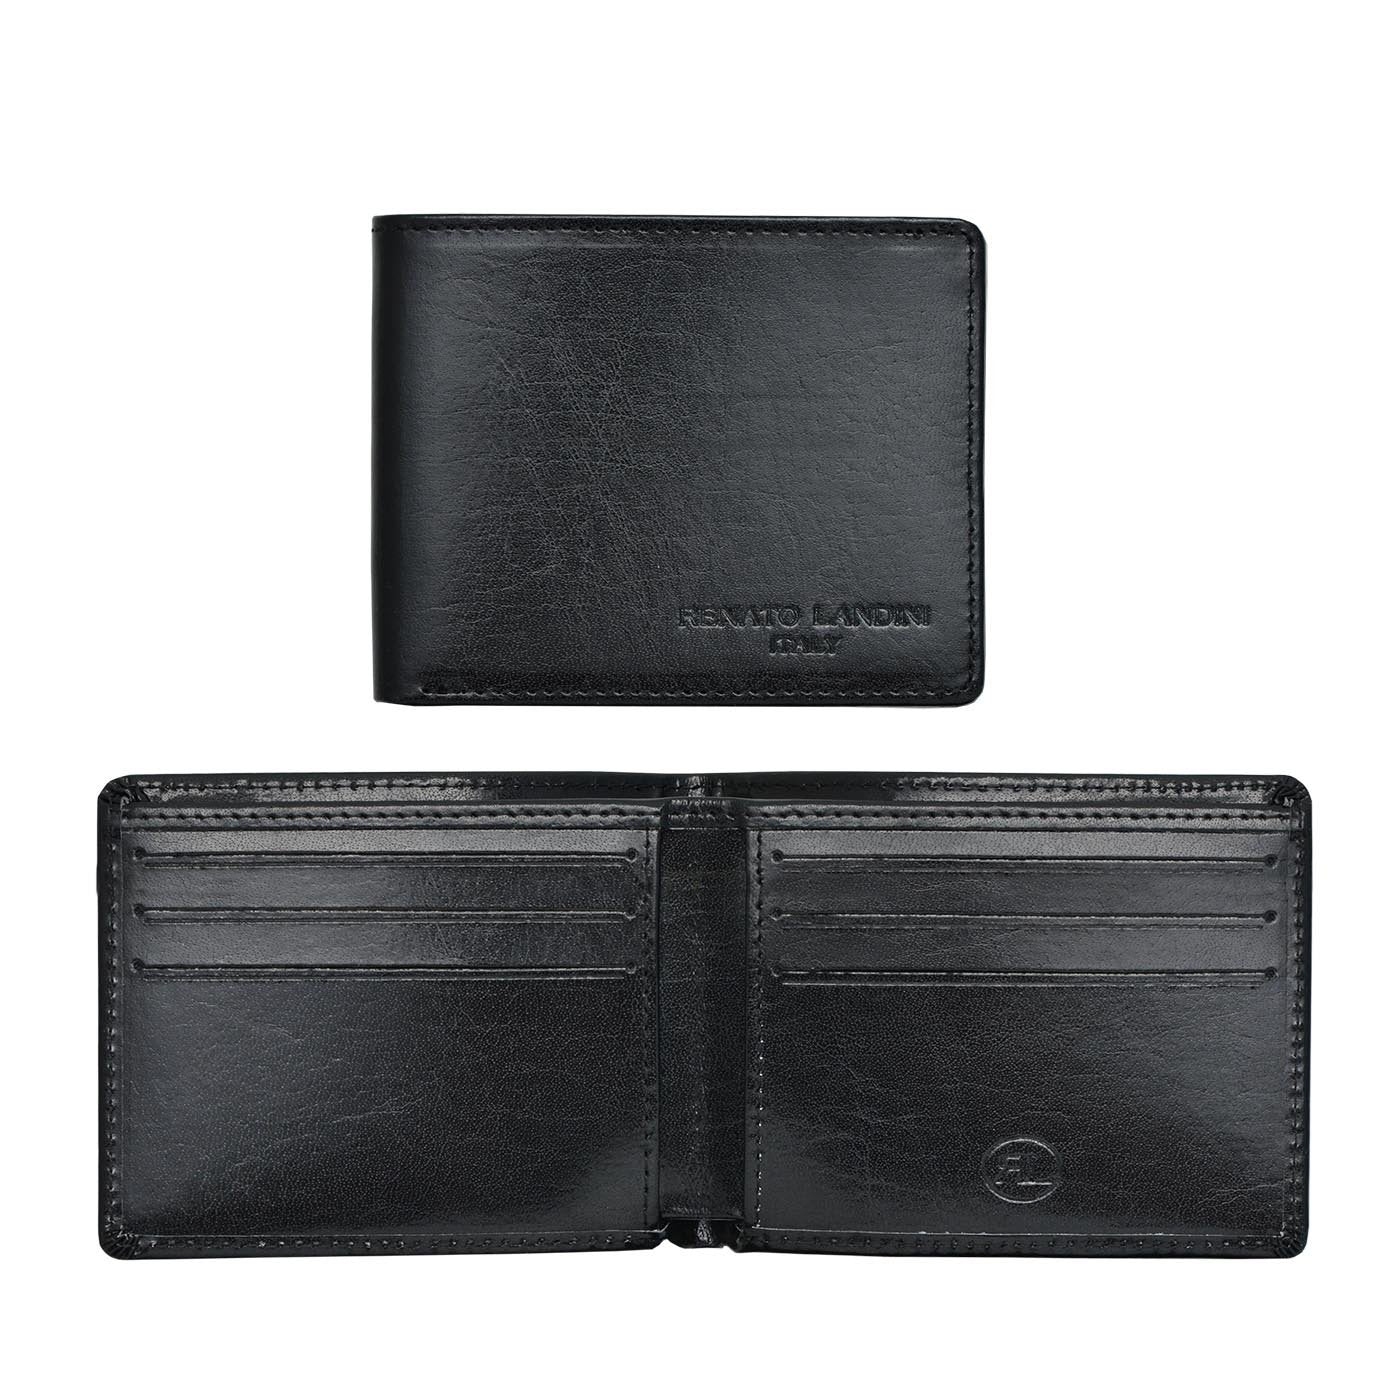 RENATO LANDINI Black Men's Wallet/ Aristocrat